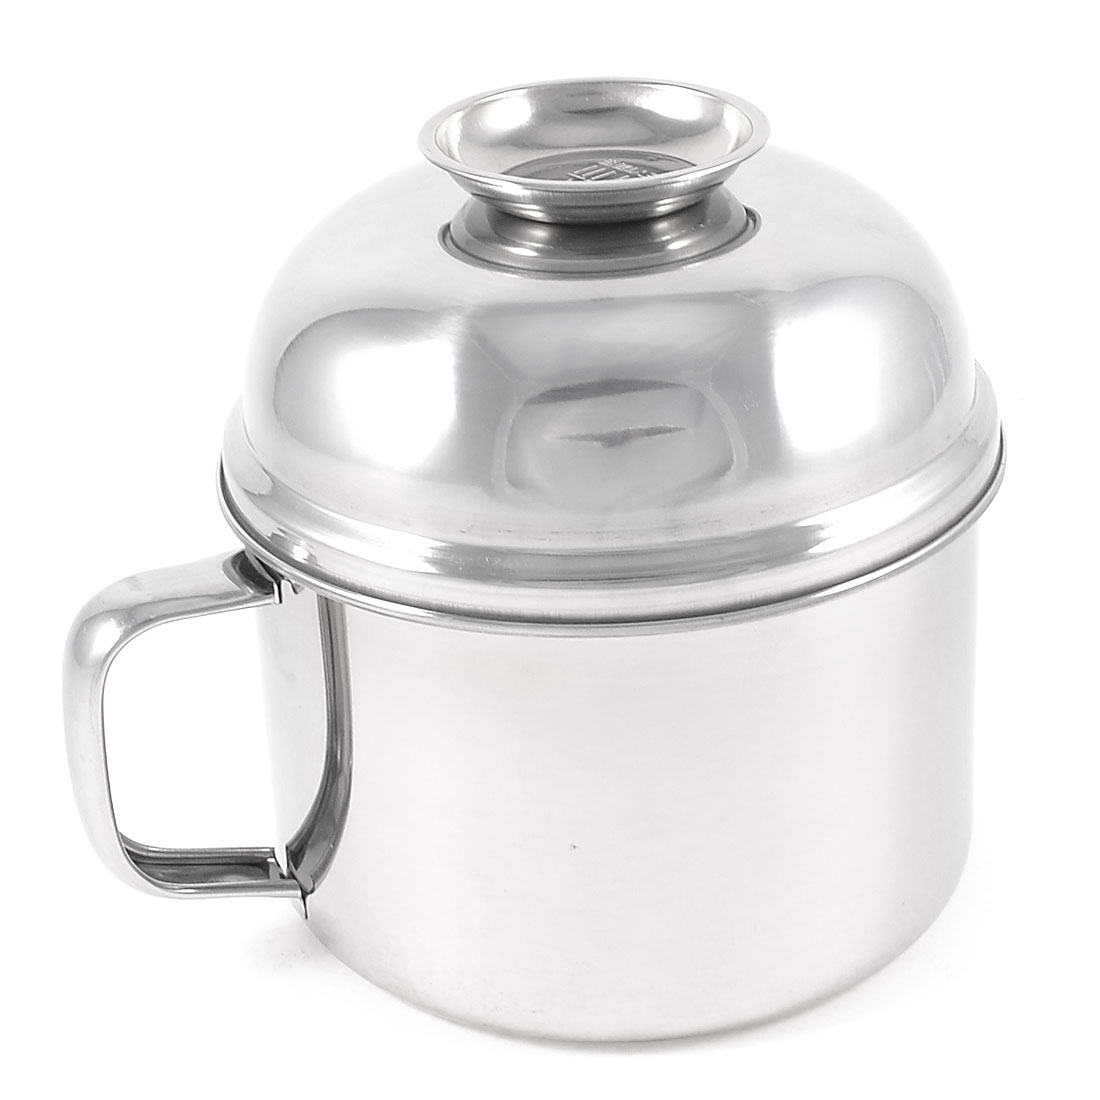 "Family Home Silver Tone Stainless Steel Lunch Box 5.8"" Diameter"